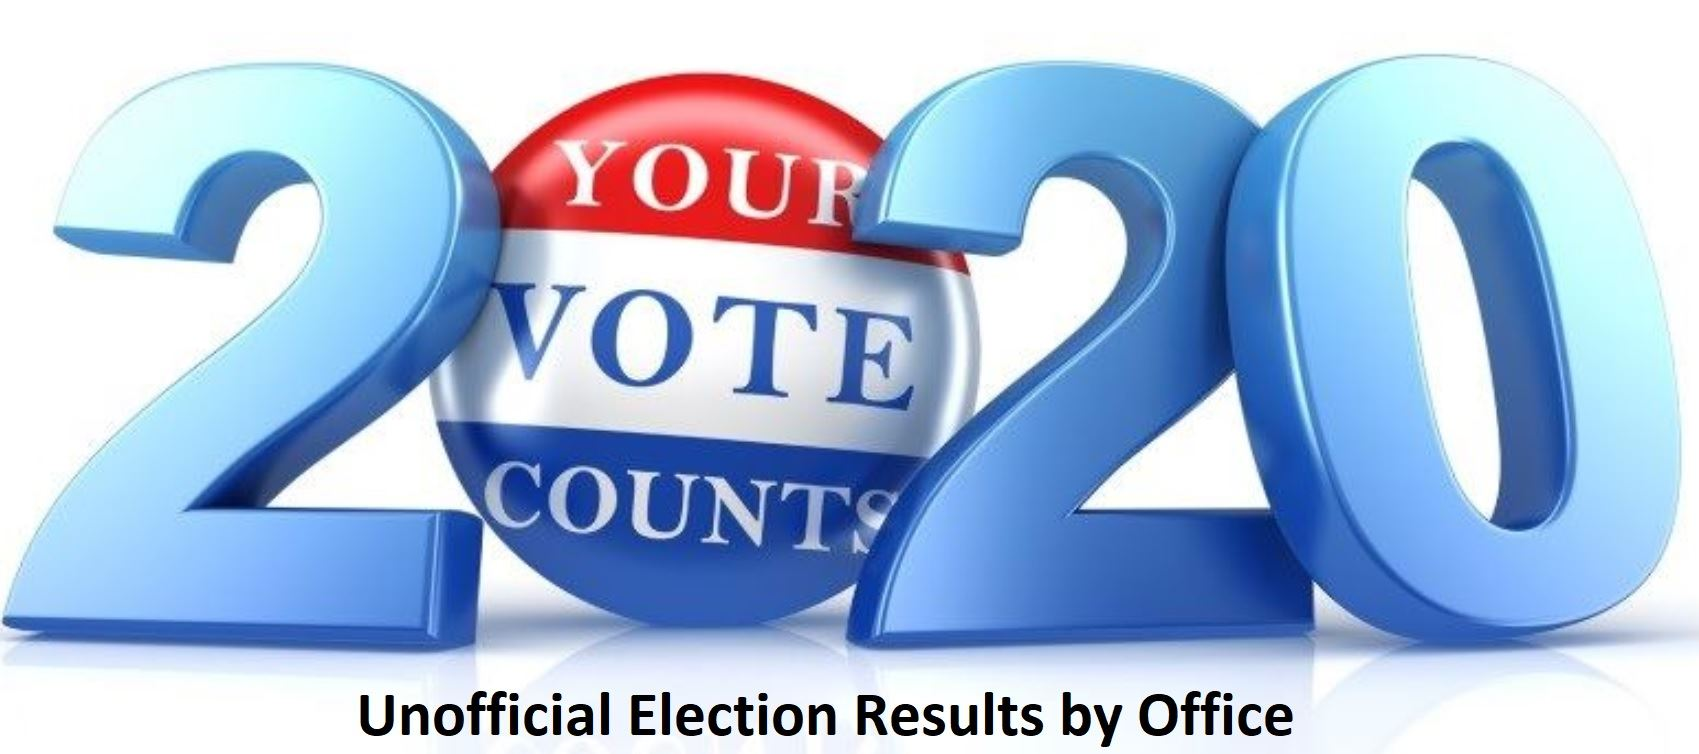 A link to the unofficial 2020 Election results by office